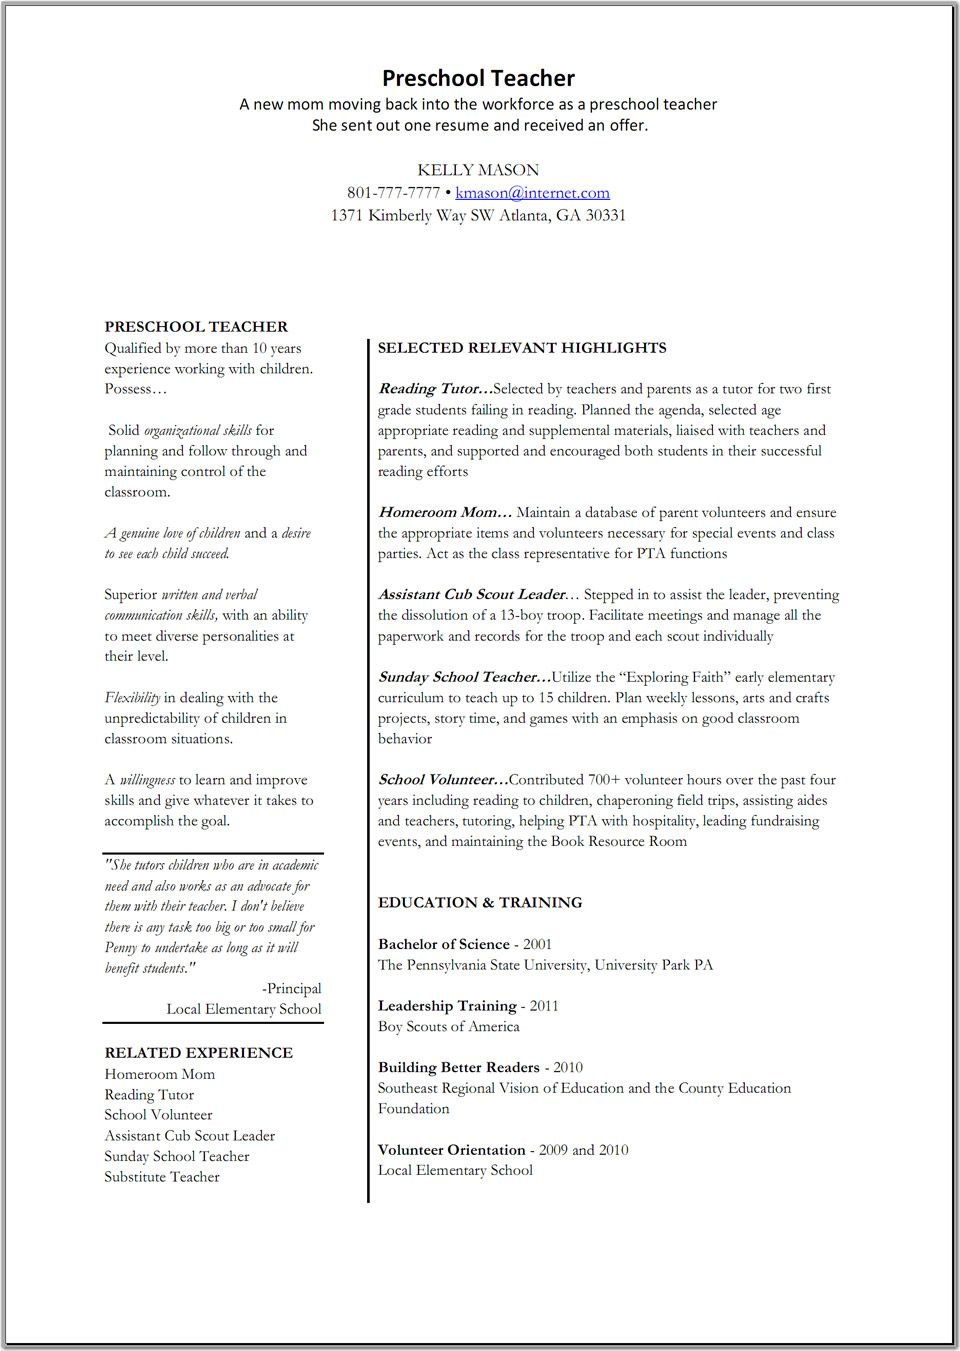 pin by free resume templates free sample resume tempalates image on free sample resume